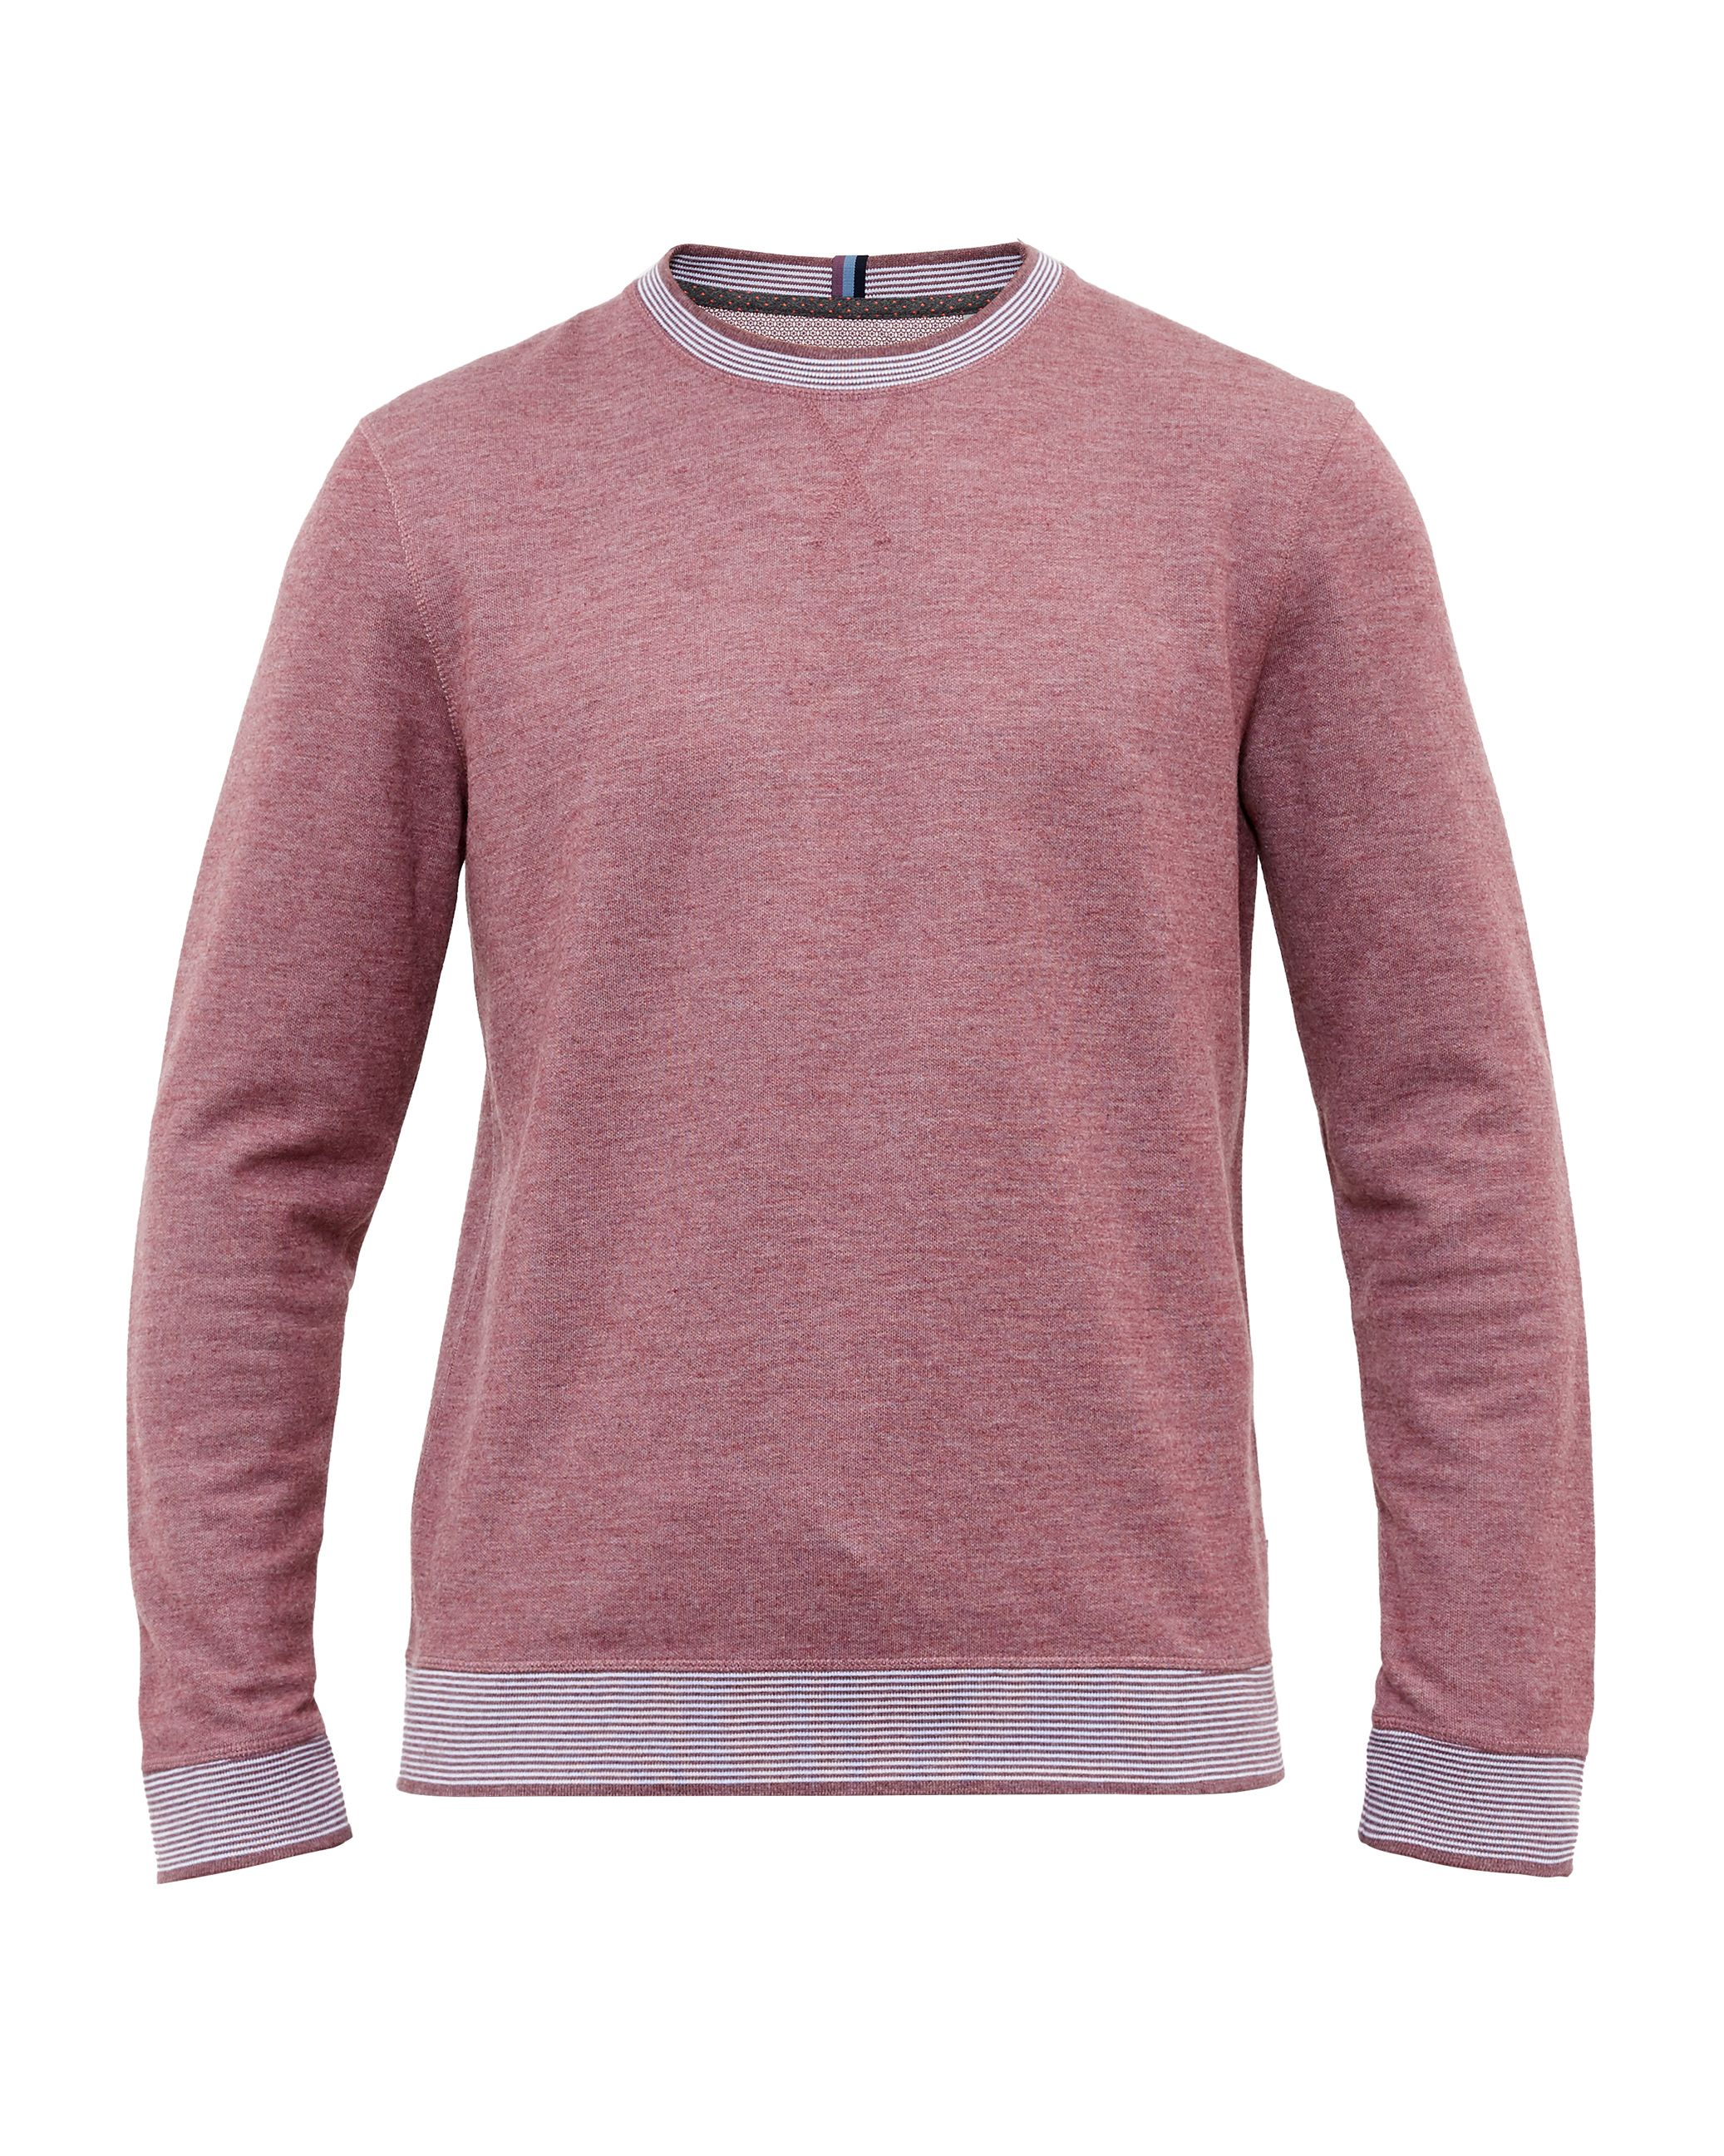 Men's Ted Baker Kaspa Crew Neck Sweatshirt, Purple